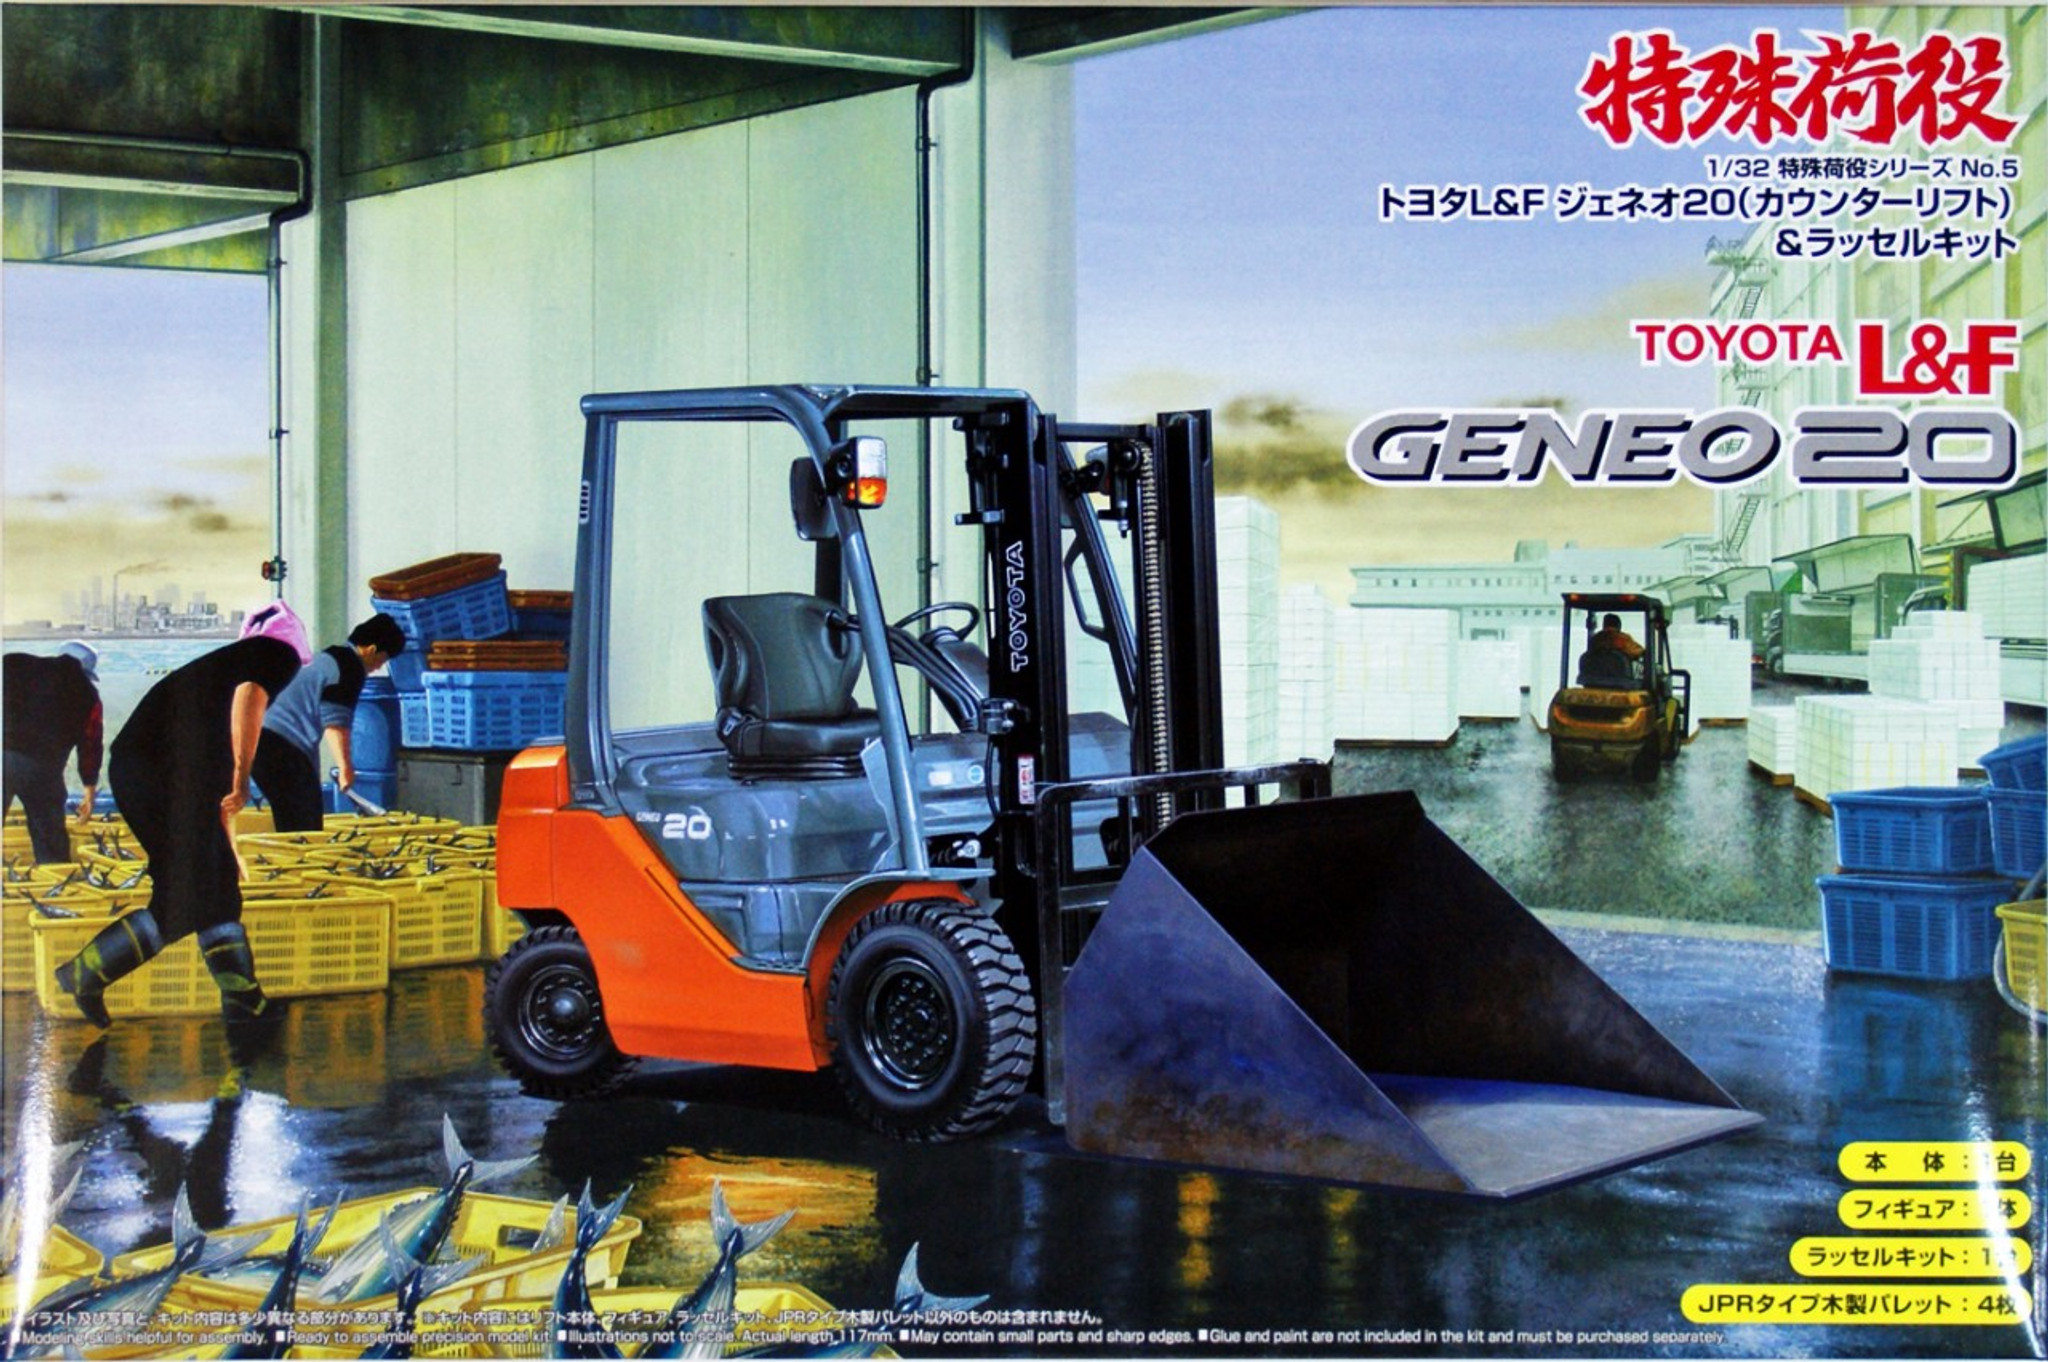 Aoshima 48153 Toyota L&F Geneo 20 Forklift with snowplow 1/32 Scale Kit